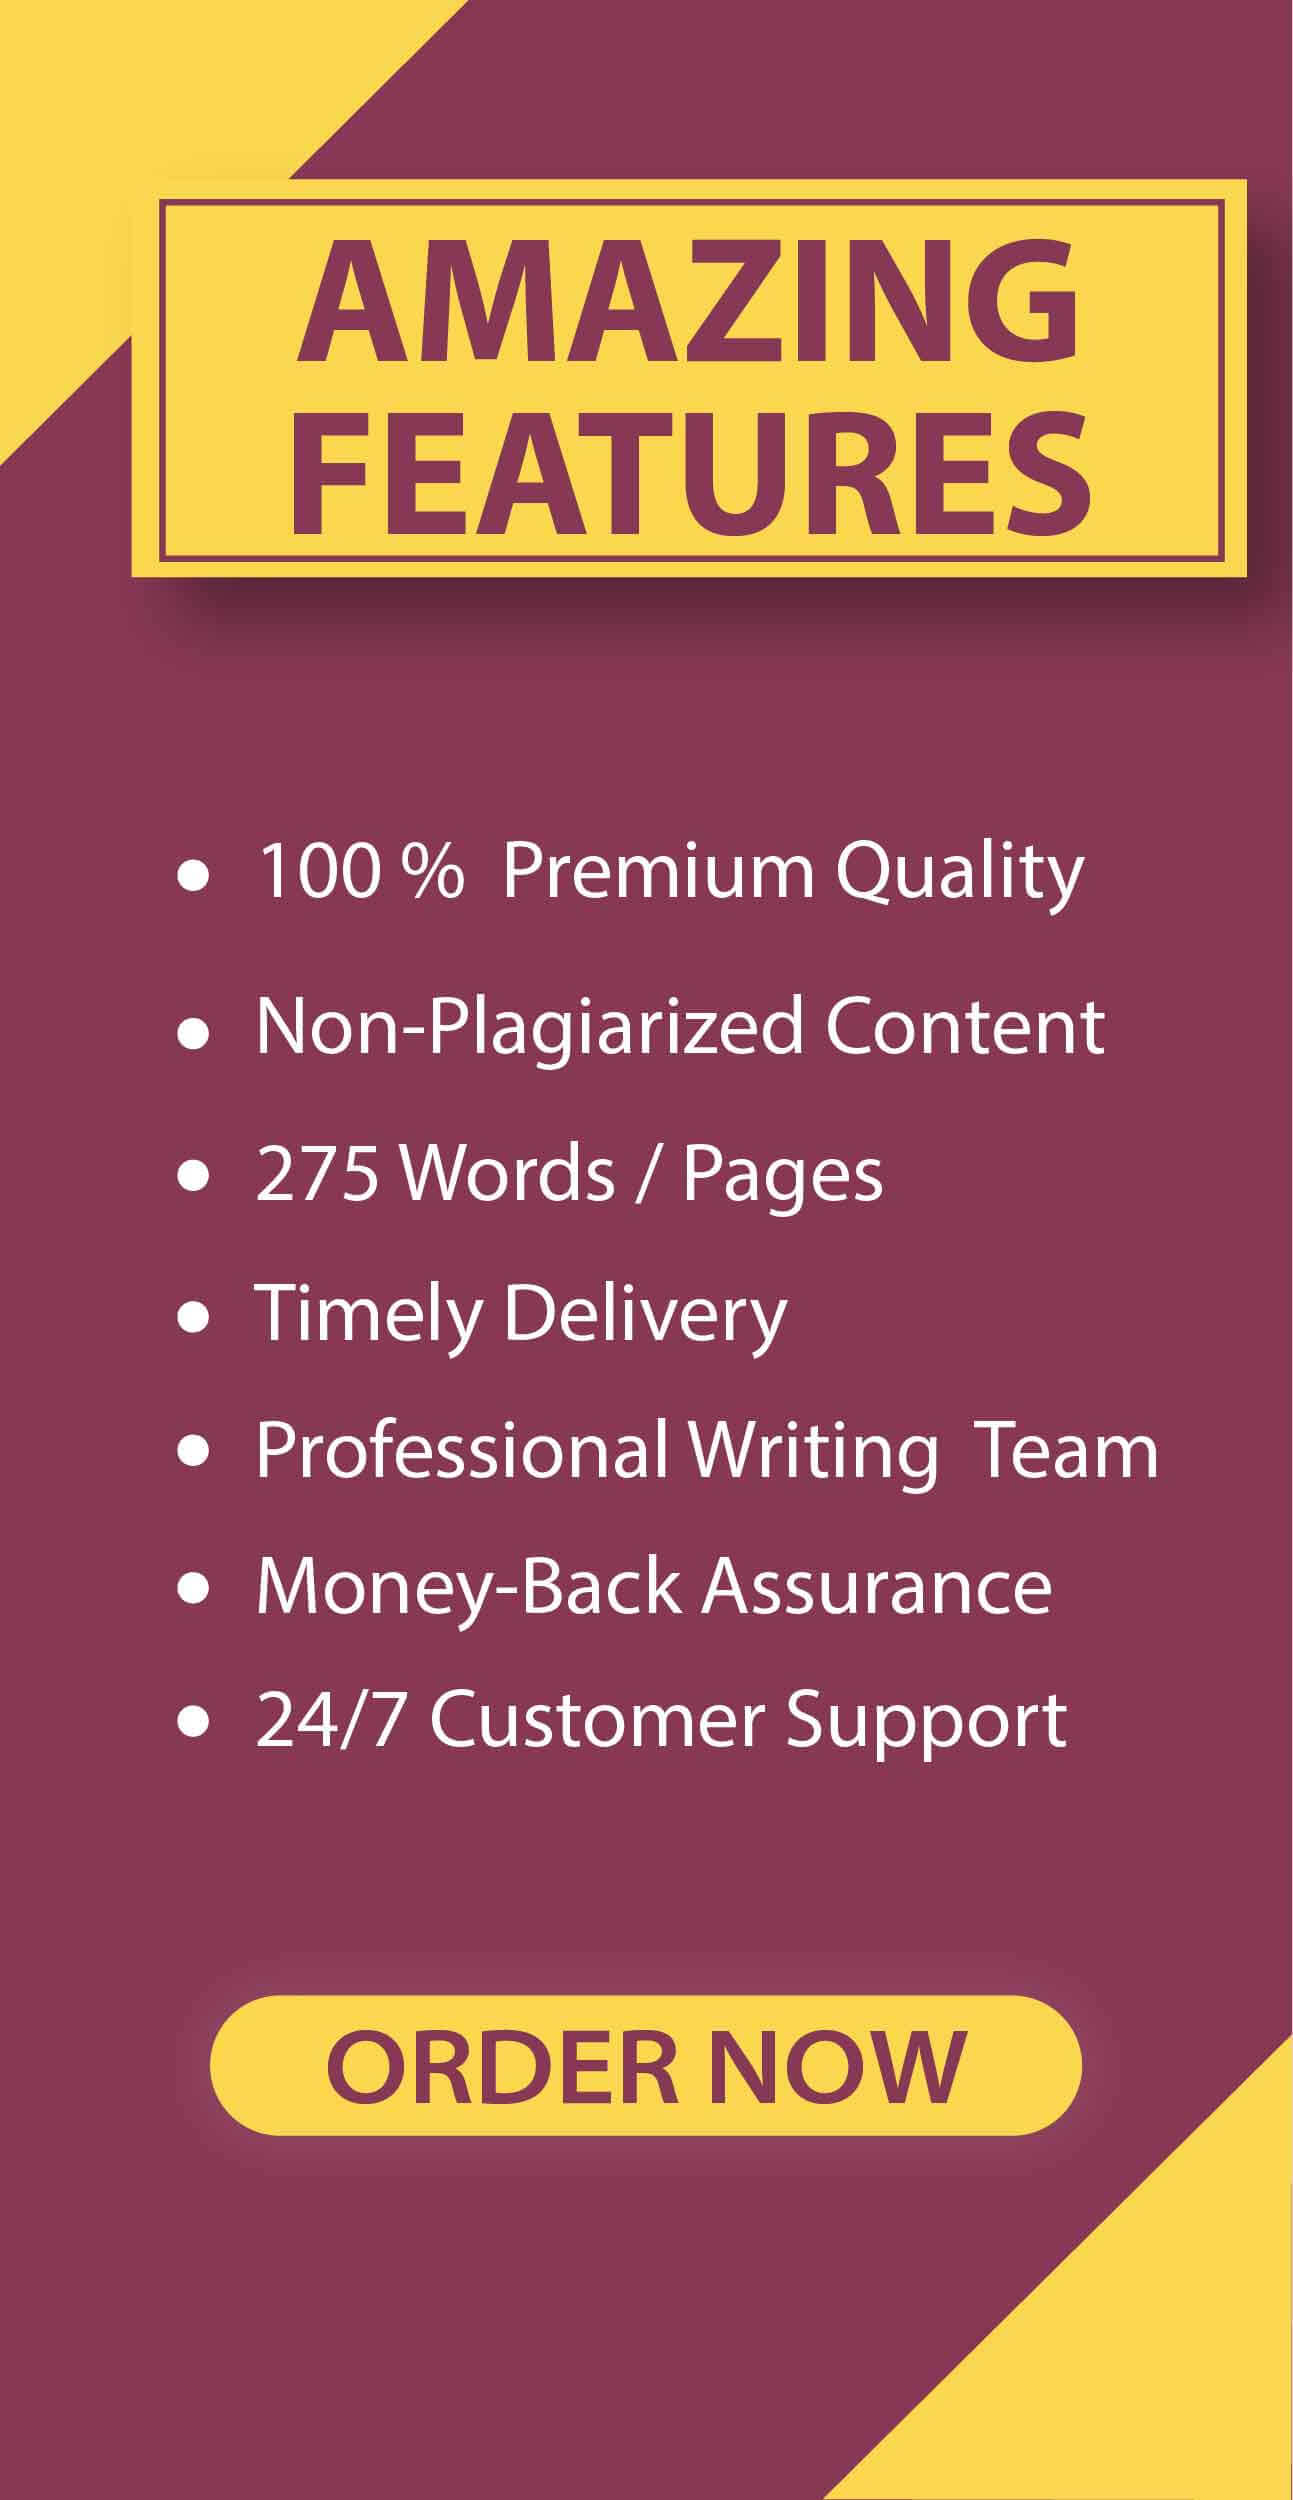 English Essay Websites Thus We Can Say That Our Team Makes Us The Best Website For Essays Hire  Us And Get Ready To Receive The Best Services That You Can Find Online Places To Do Community Service also Essay On High School Dropouts Best Website For Essays  Buy Essay From Qualified Writers Essay About Paper